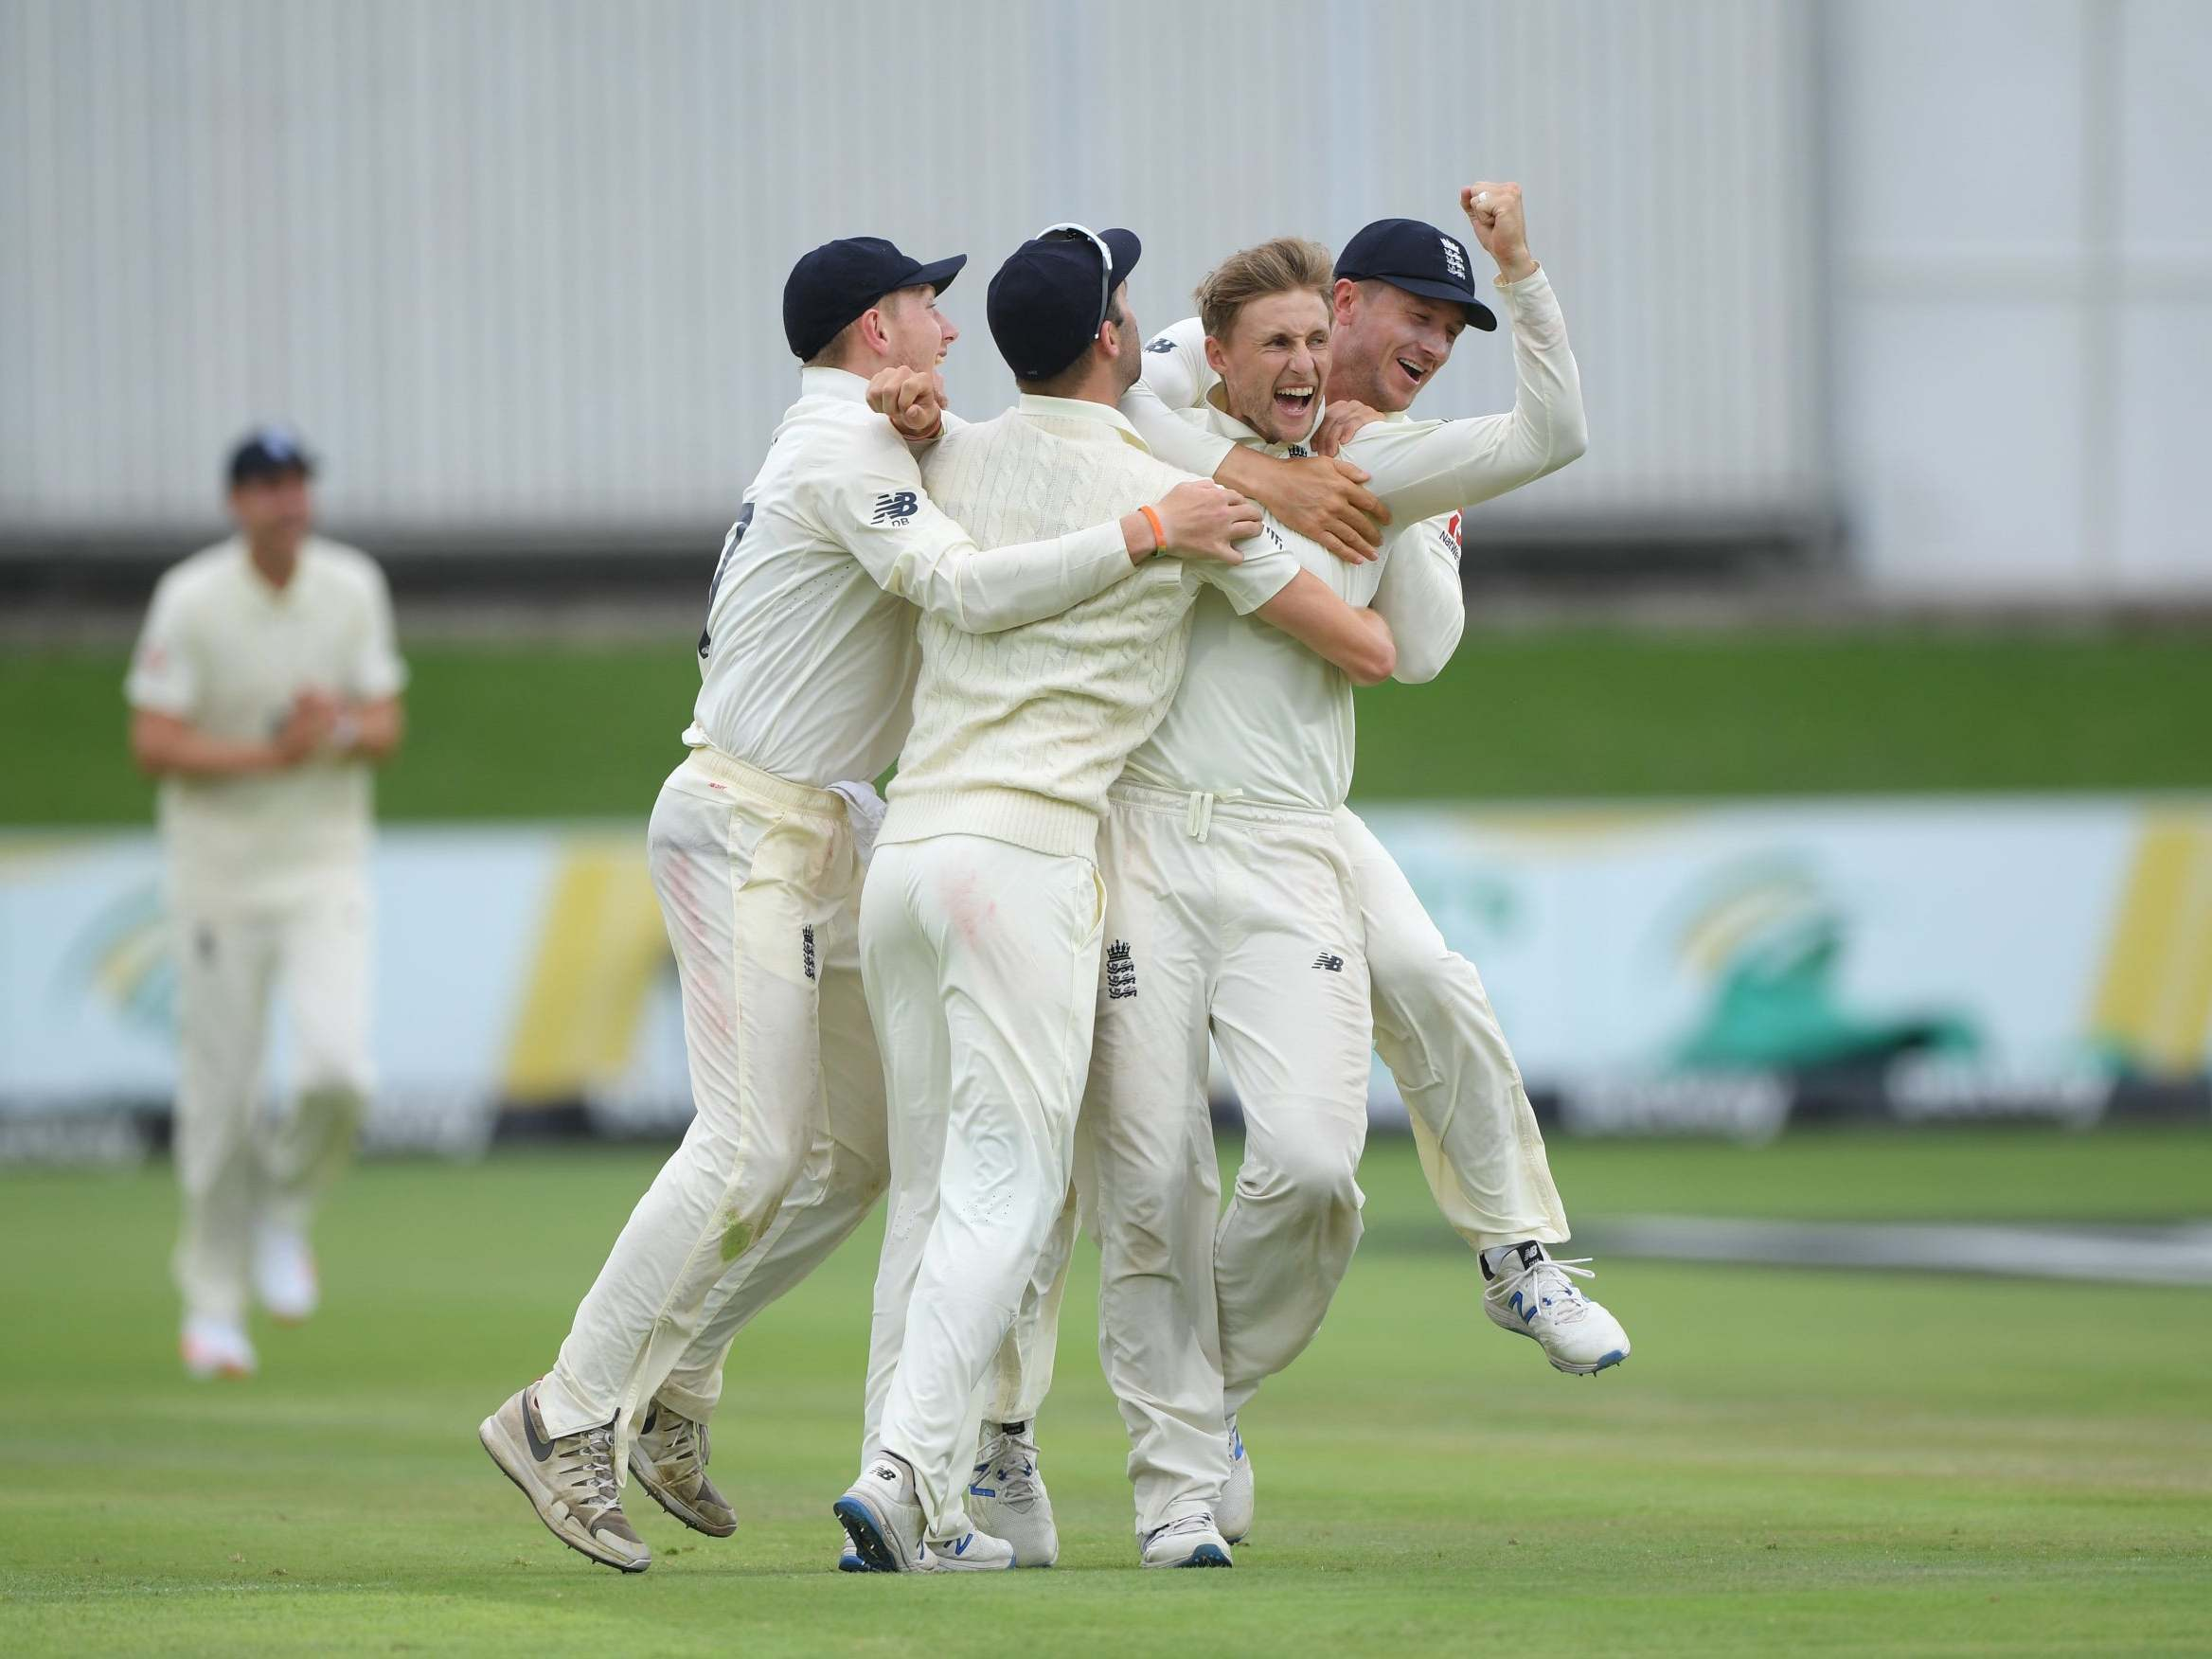 Joe Root wreaks havoc on South Africa as England close in on third Test victory